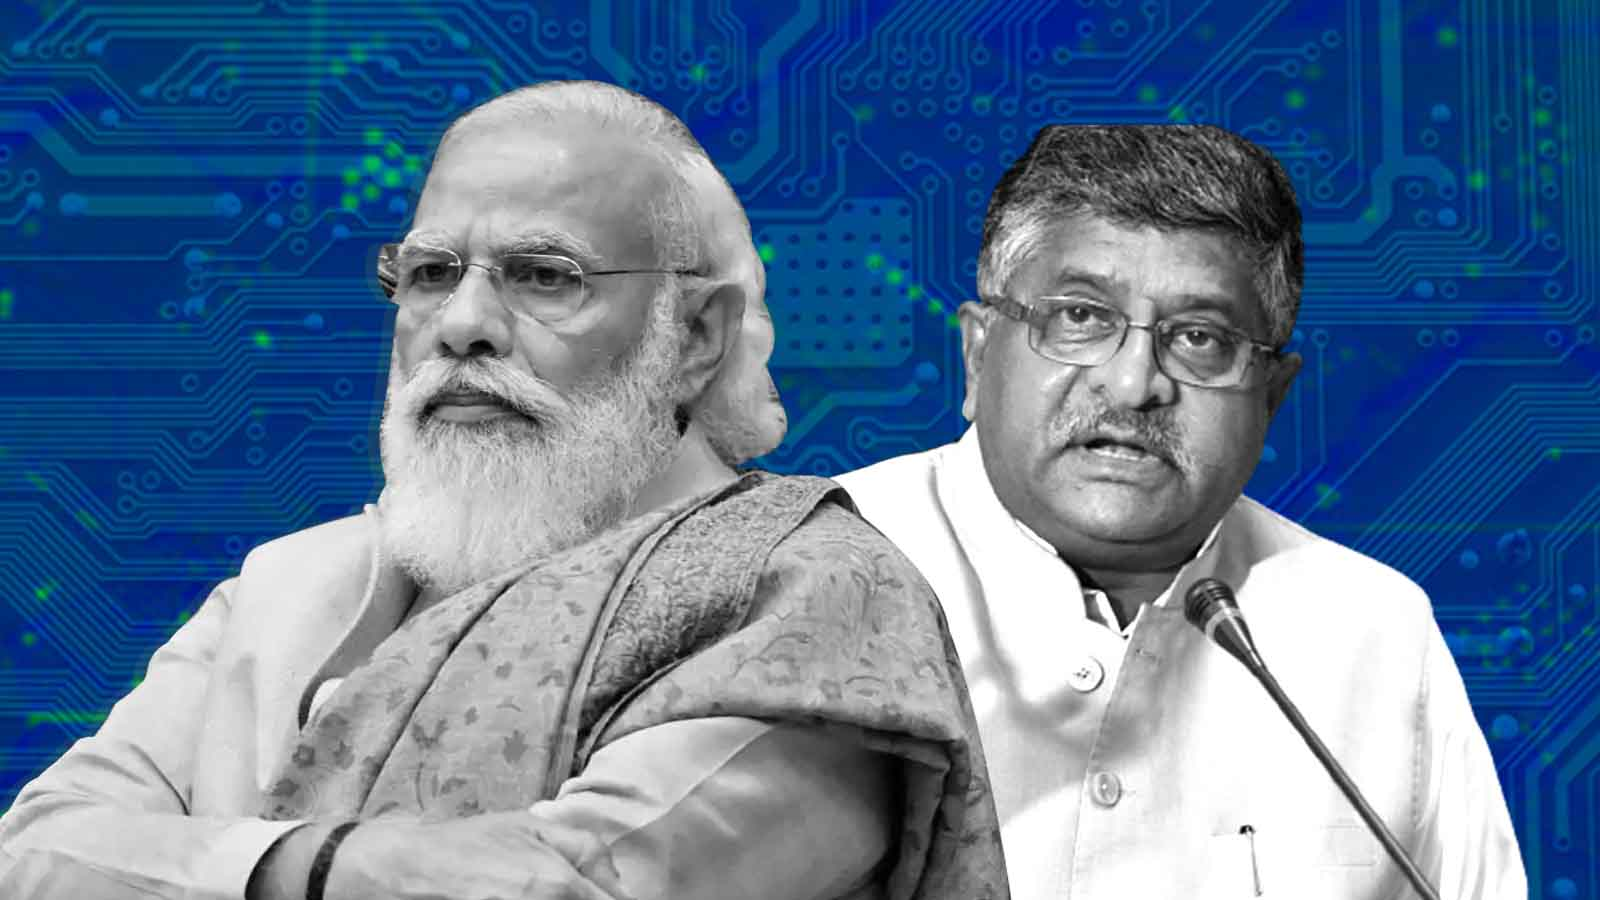 Semiconductor to be built in India - Government of India is trying to lure chip manufacturers